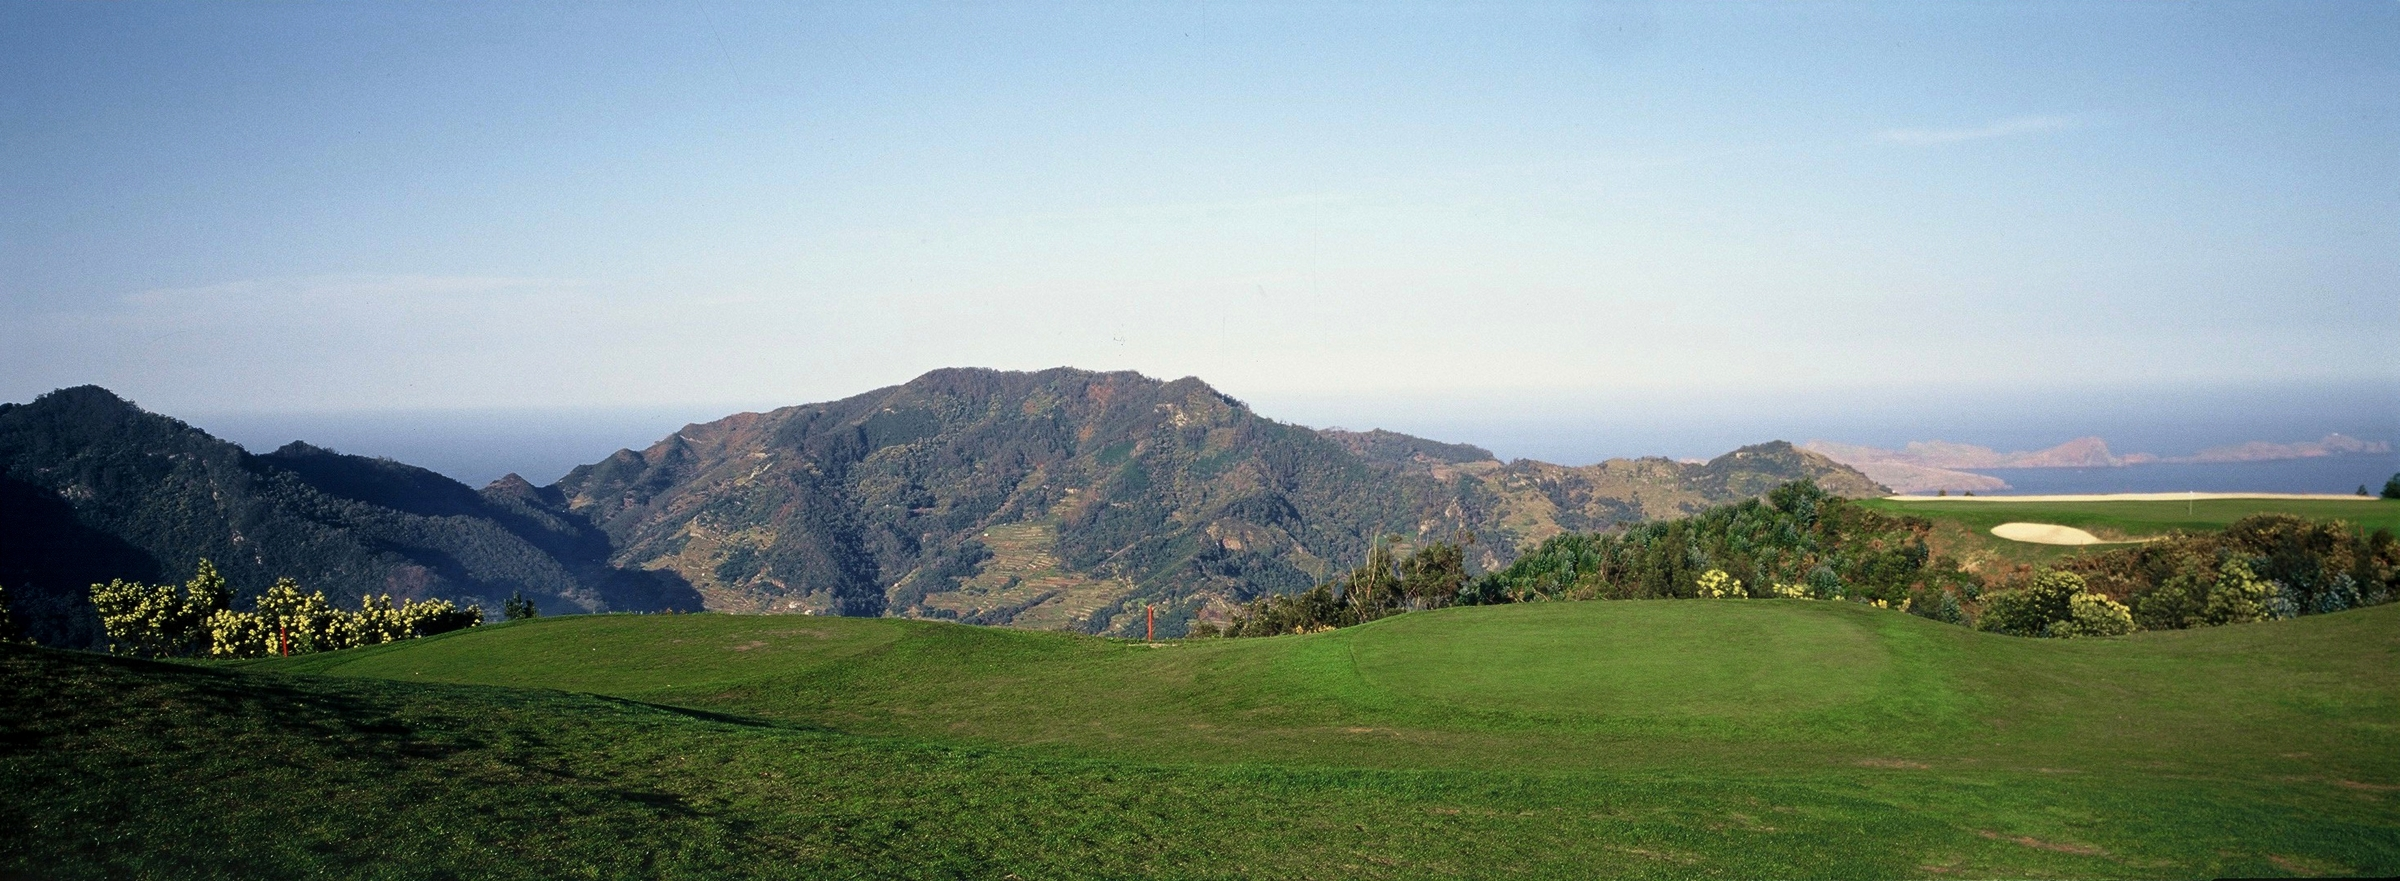 Madeira hailed as Europe's up and coming golf destination